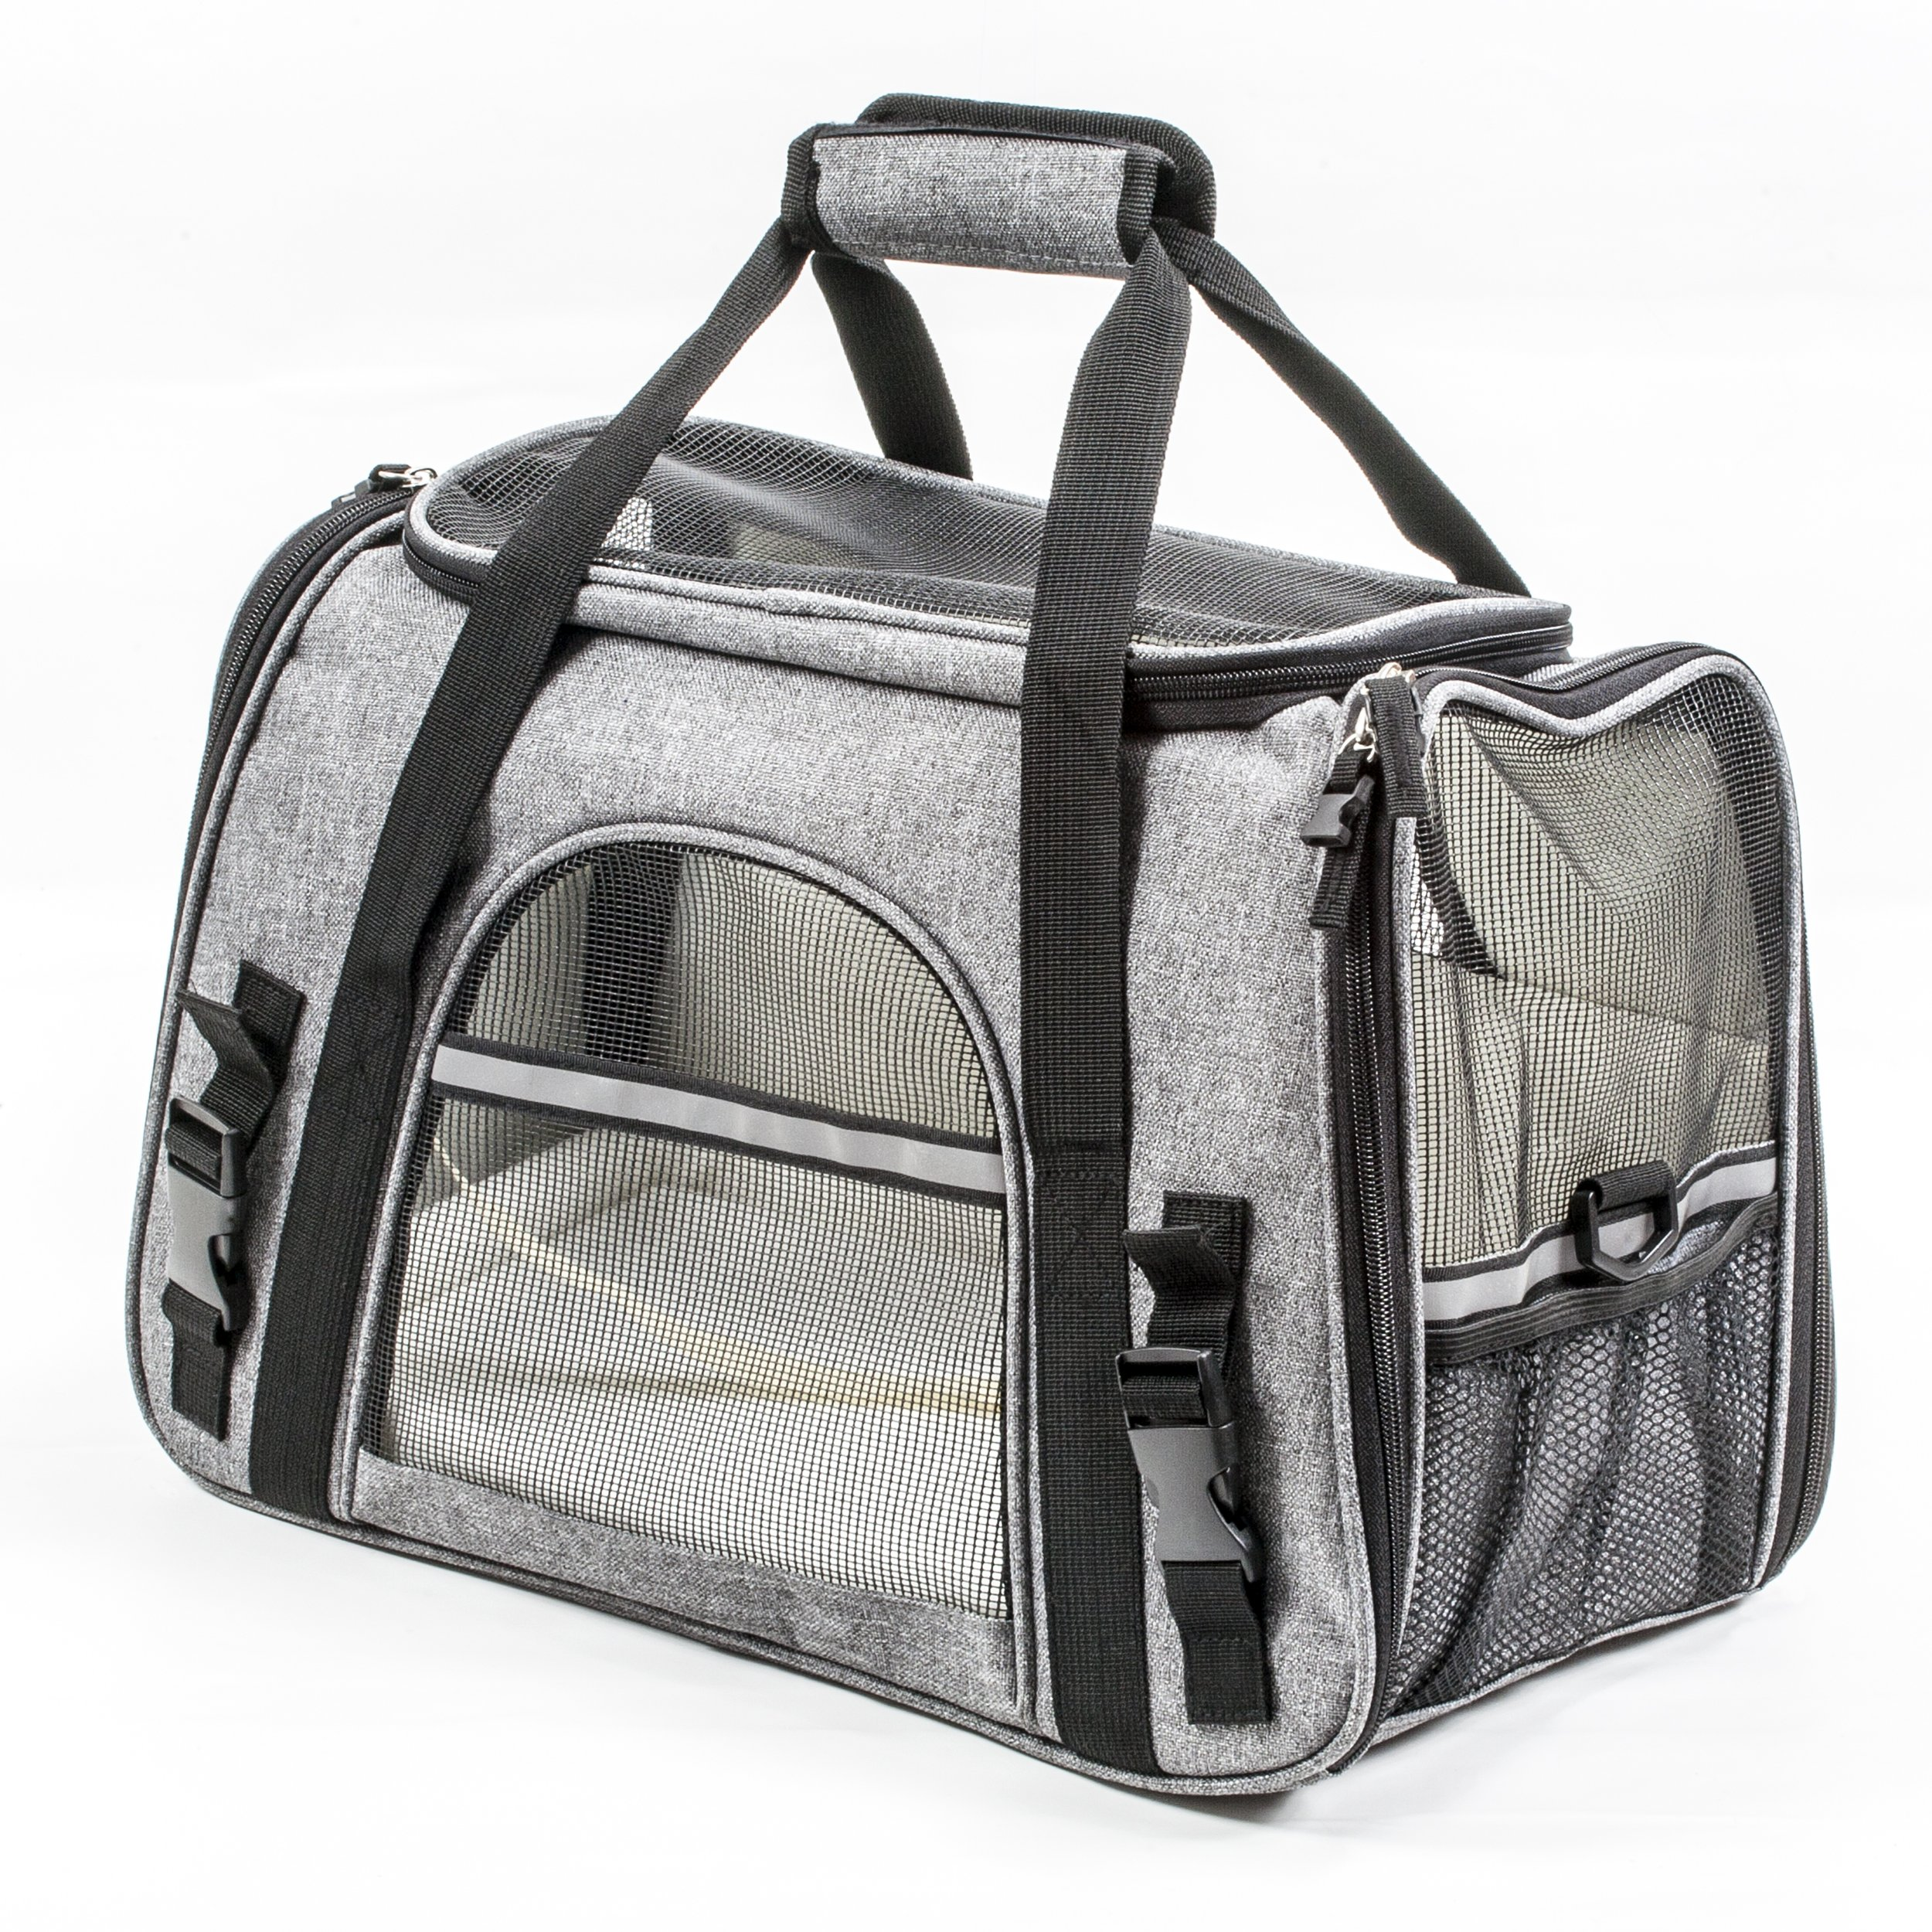 Pawfect Pets Pet Travel Carrier, Soft-Sided with Two Pet Mats for Small Dogs and Cats (Grey) by Pawfect Pets (Image #6)